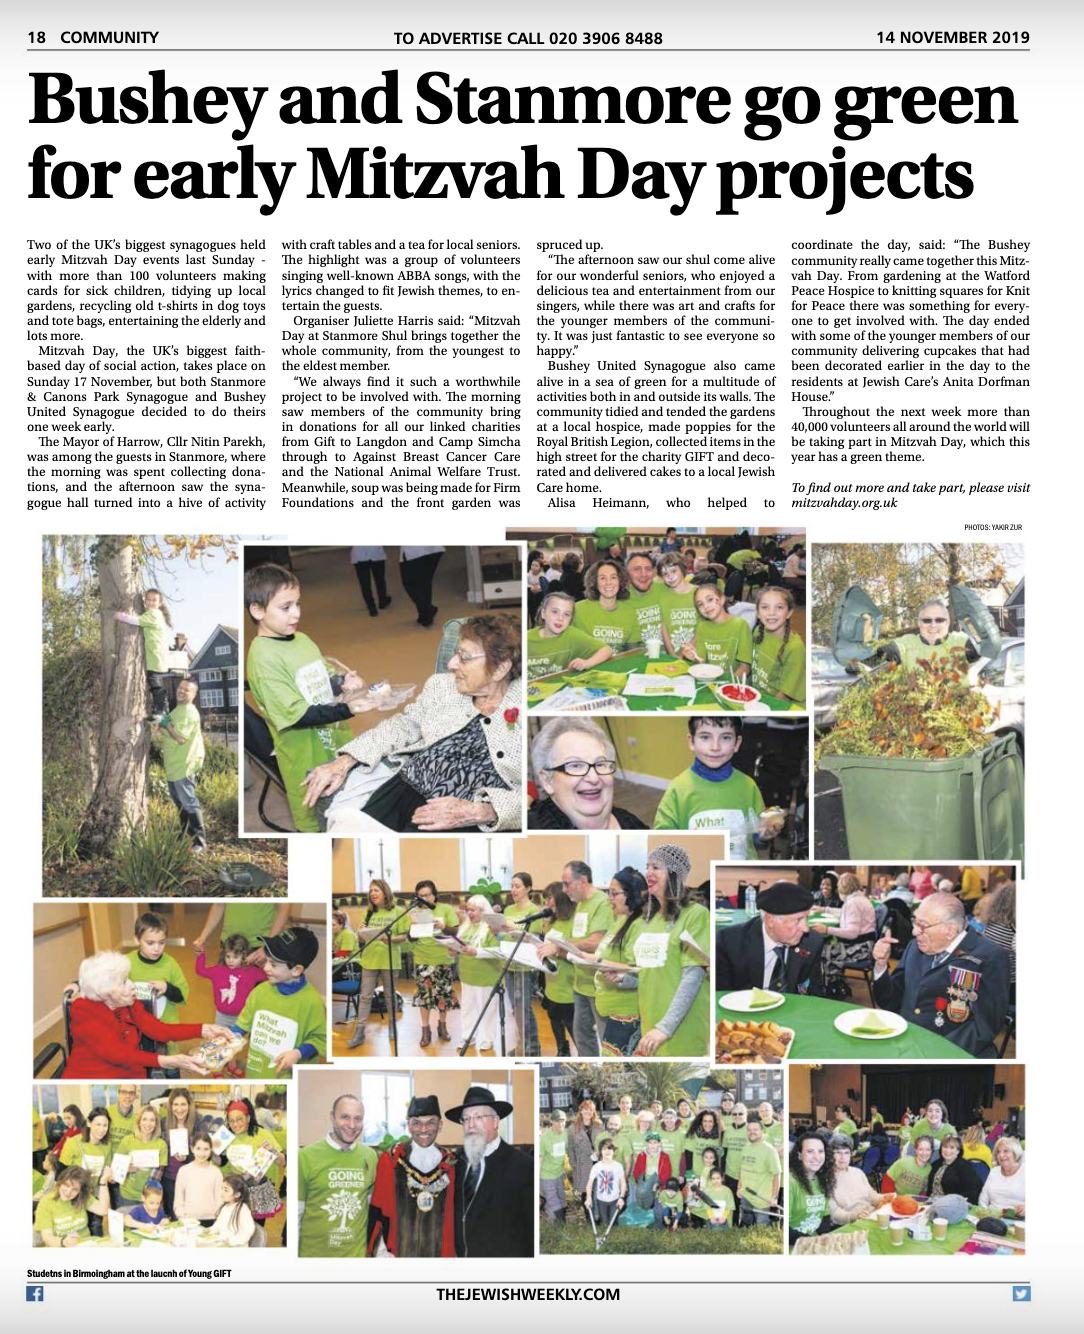 Coverage in the Jewish Weekly